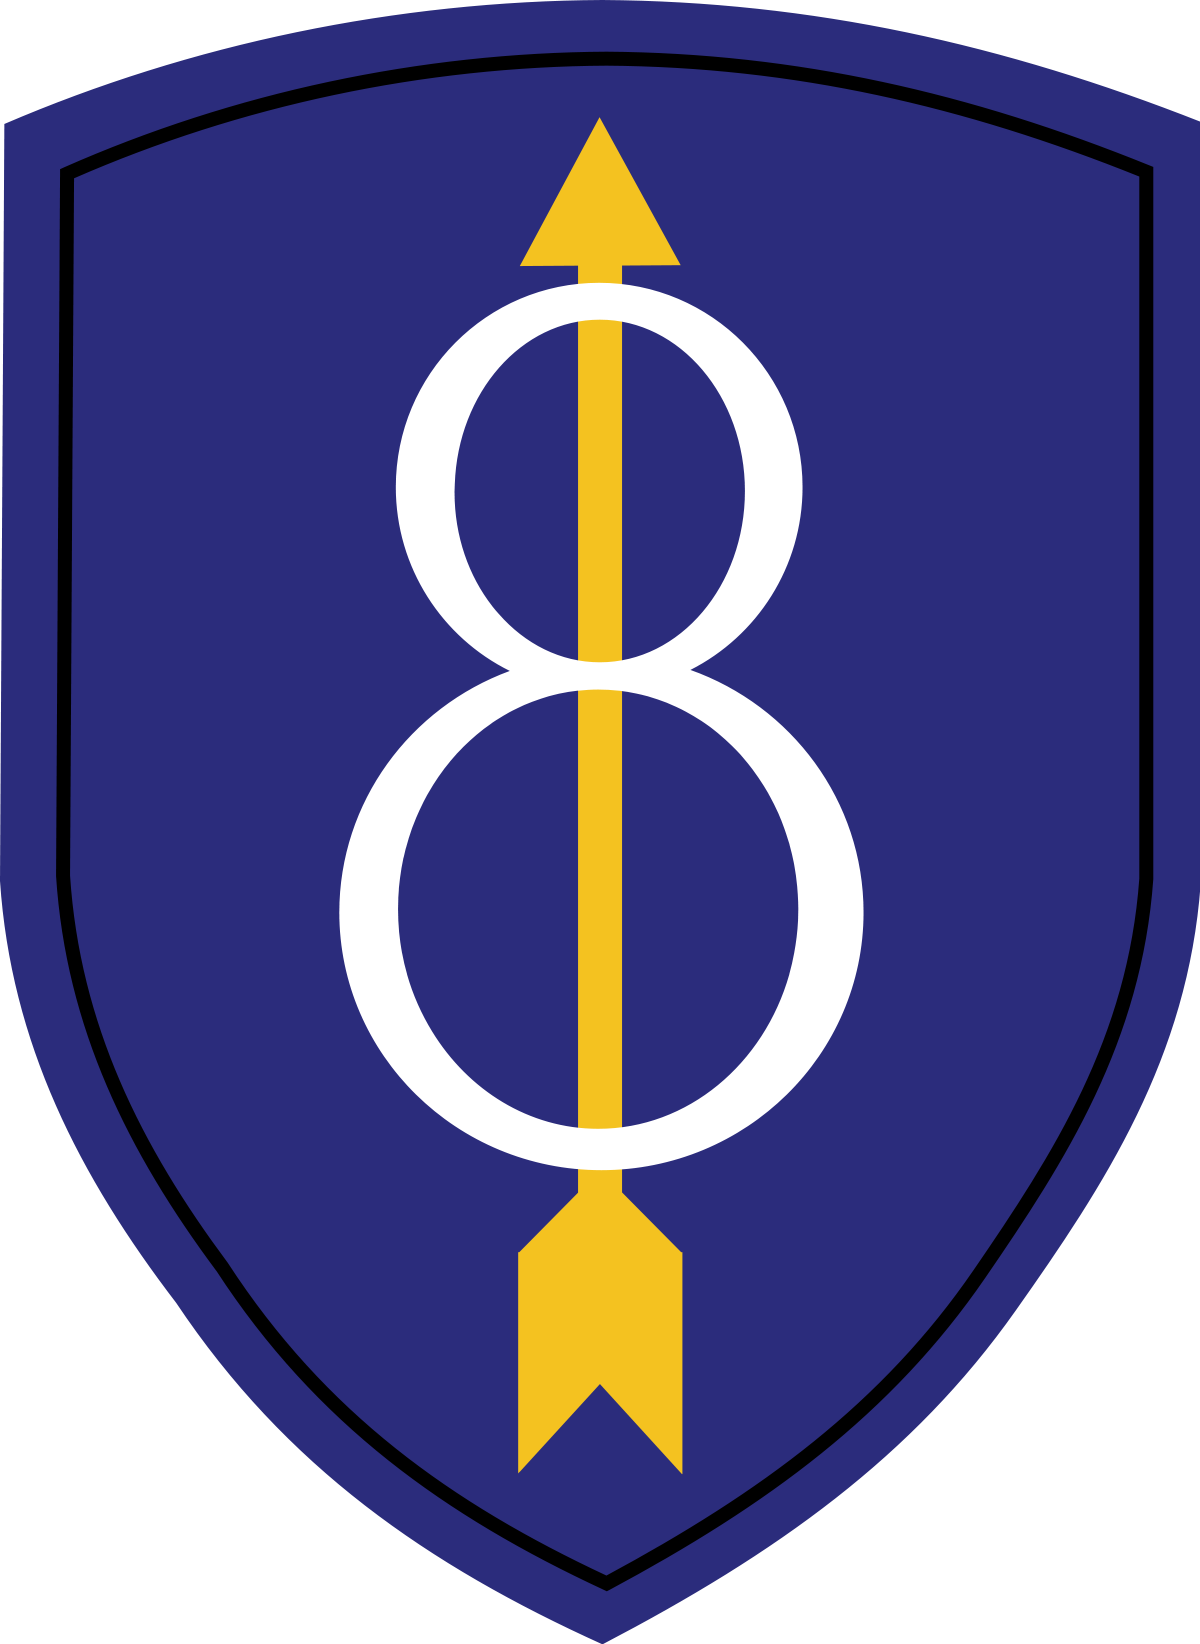 8th Infantry Division (United States).